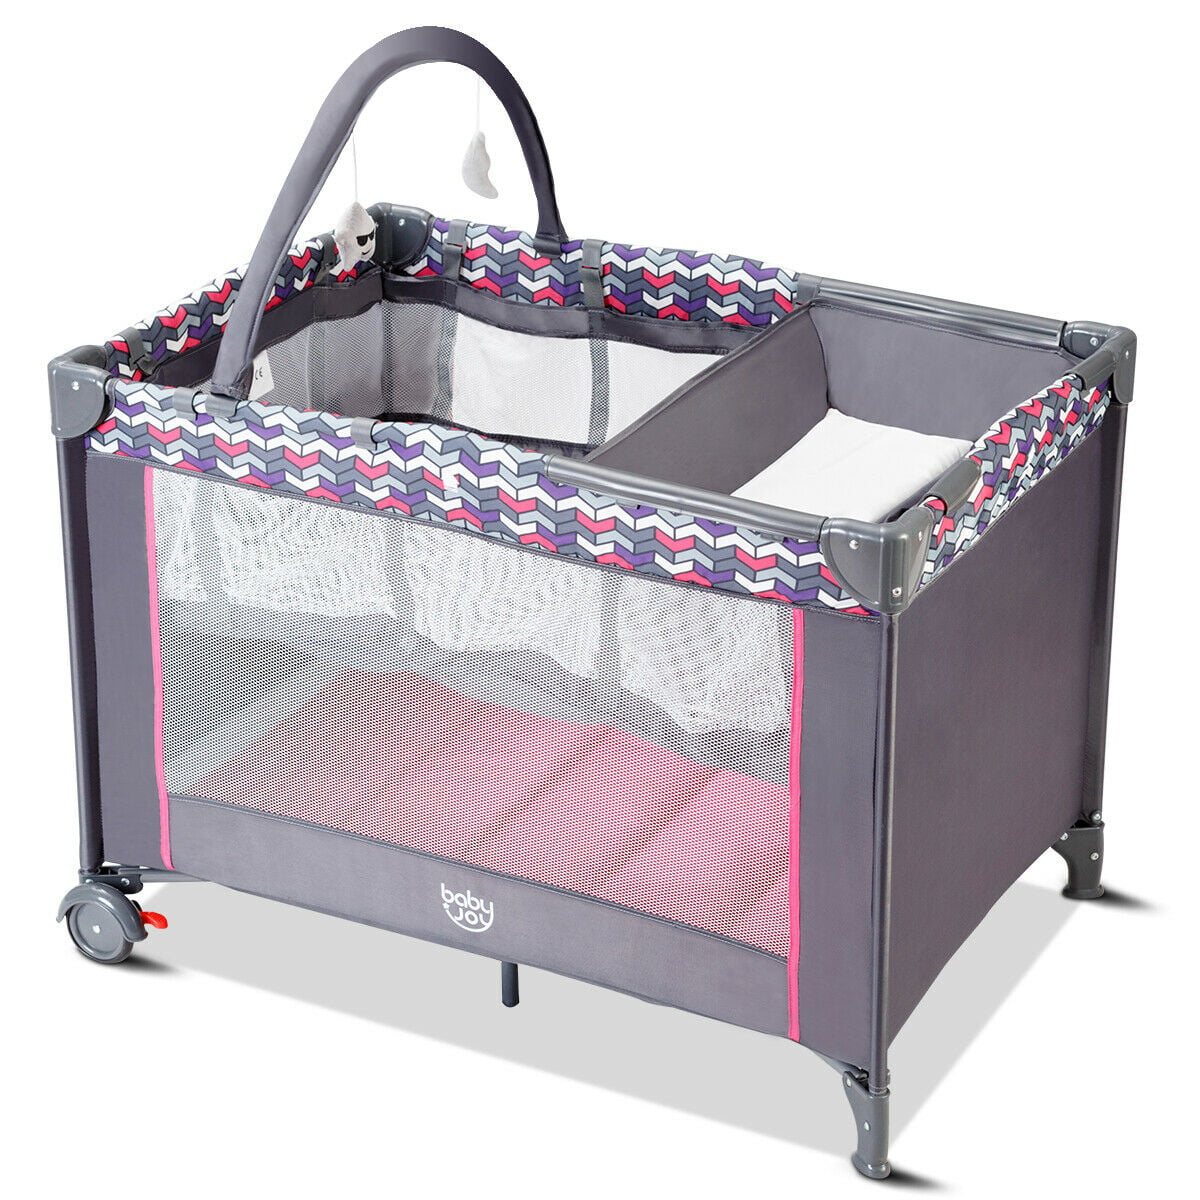 Babyjoy Folding Travel Baby Crib Playpen Infant Bassinet Bed Changing Table w Baby Toys by Costway